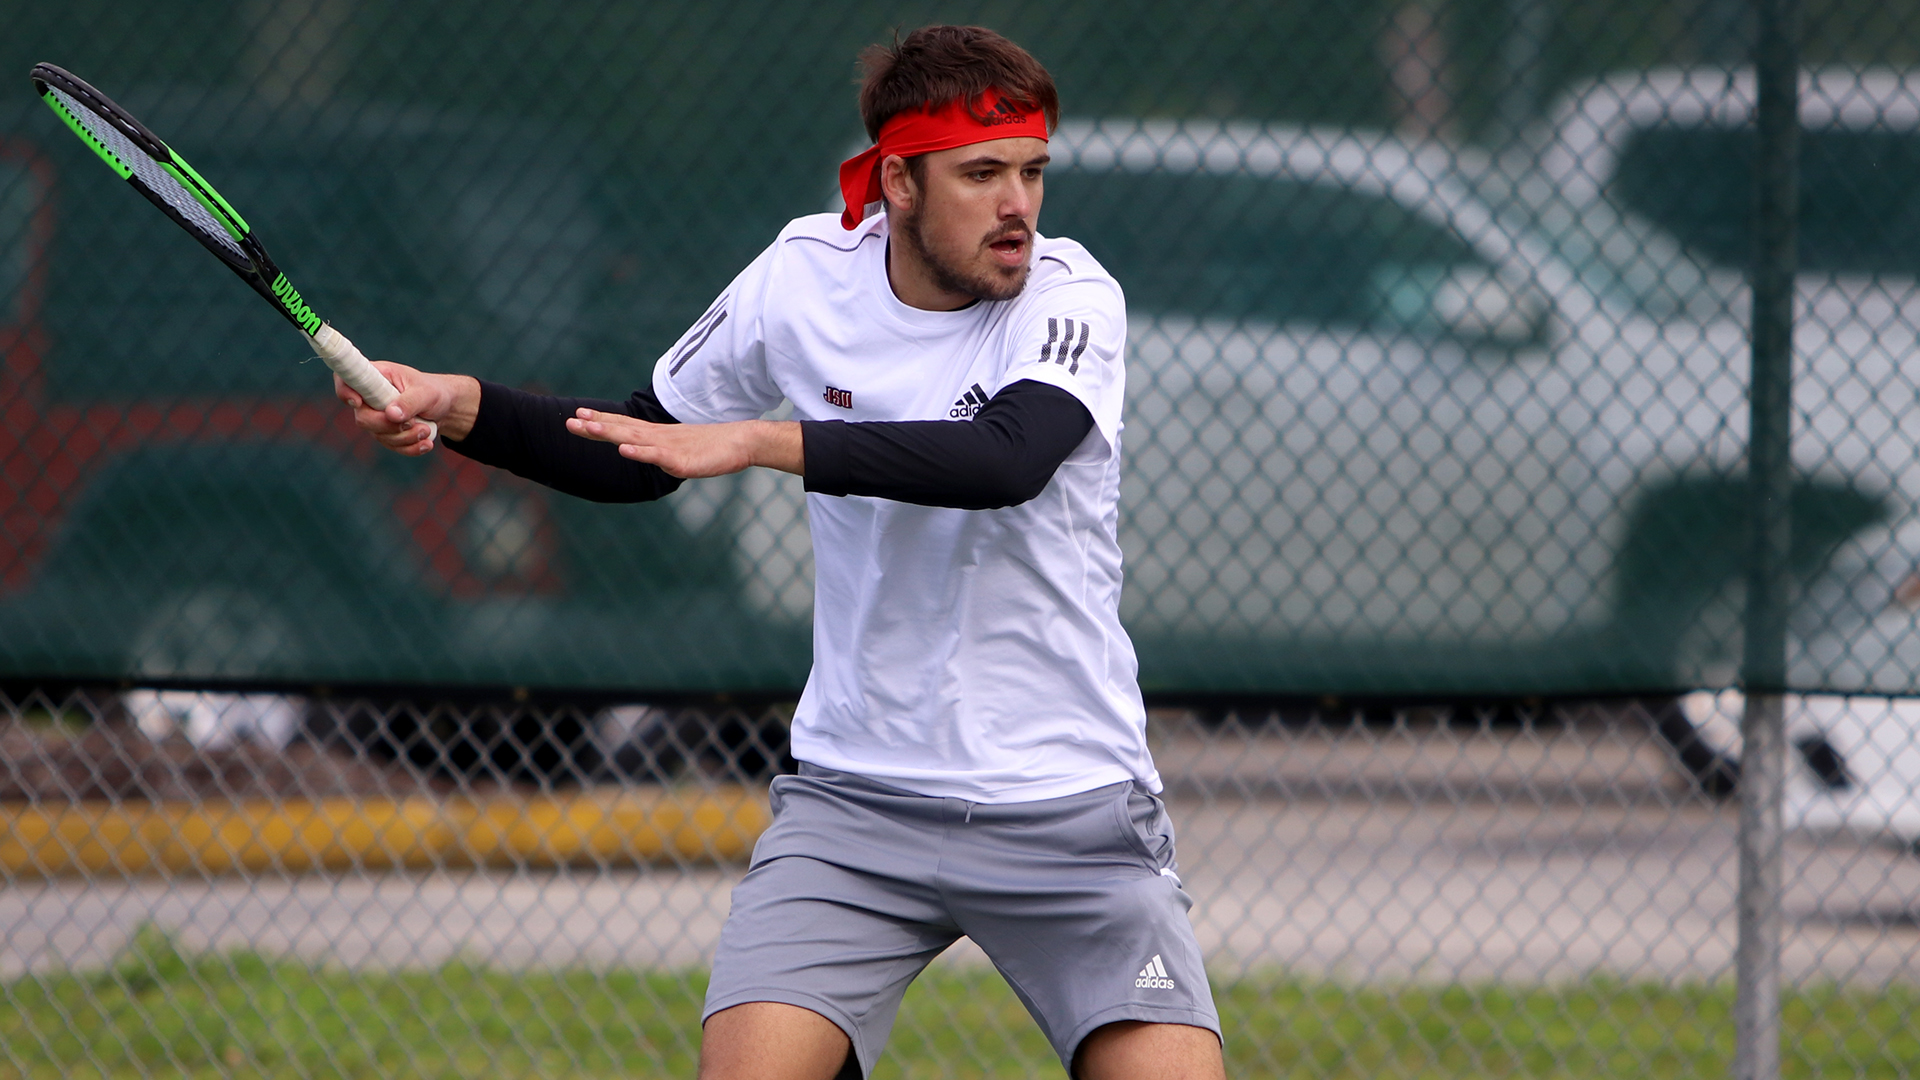 Aljaz Kaplja competes in a singles match against Kennesaw State on March 12 where he was still able to keep the Gamecocks on the board with a 6-3,6-3 two-set win over KSU's Harvey Conway. (Courtesy of JSU)